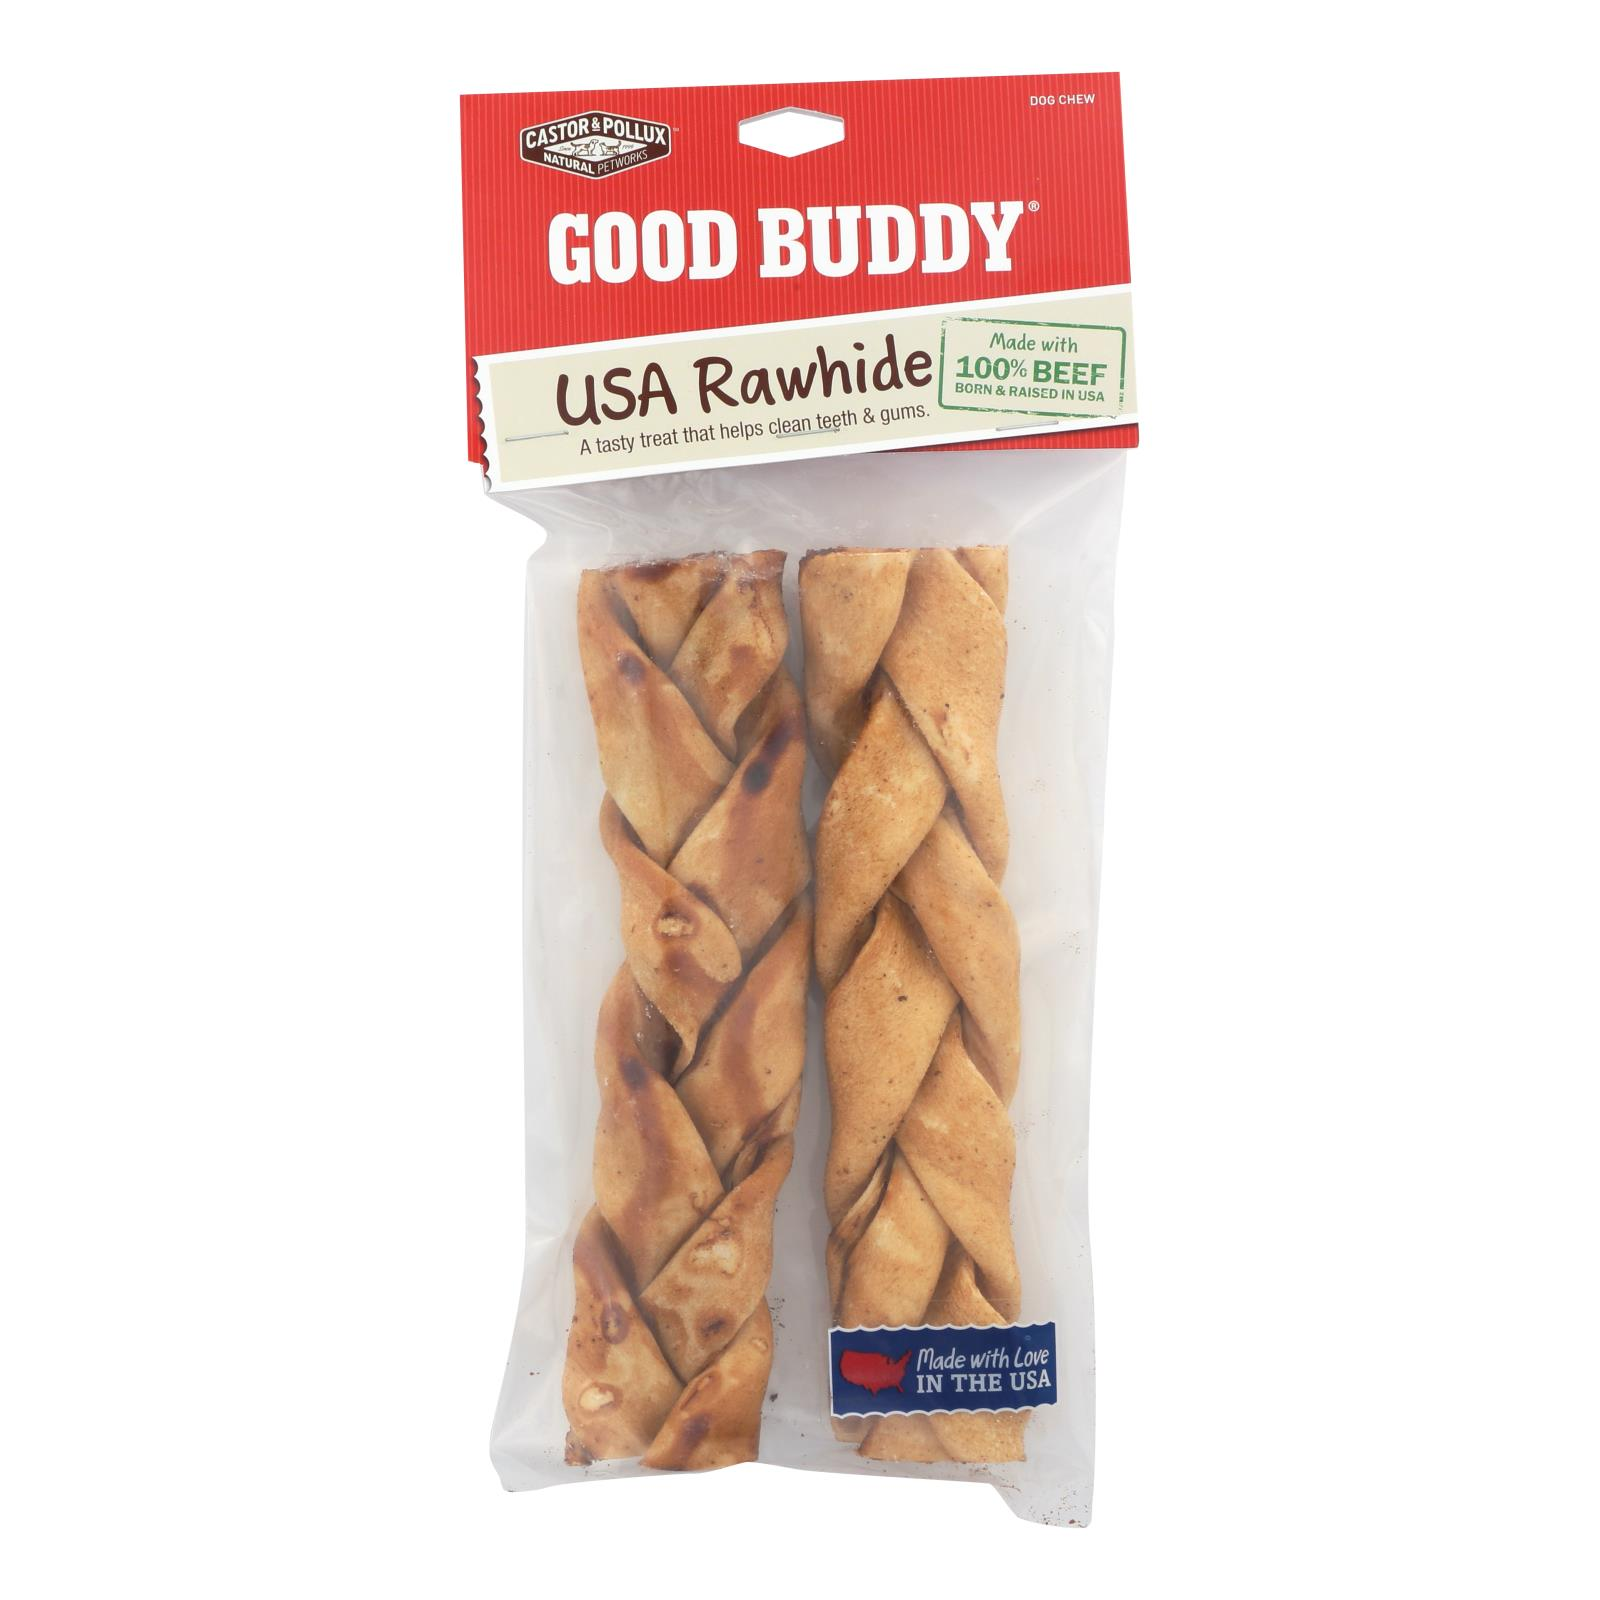 Castor and Pollux Good Buddy Braided Sticks Dog Chews - Chicken Braids - Case of 9